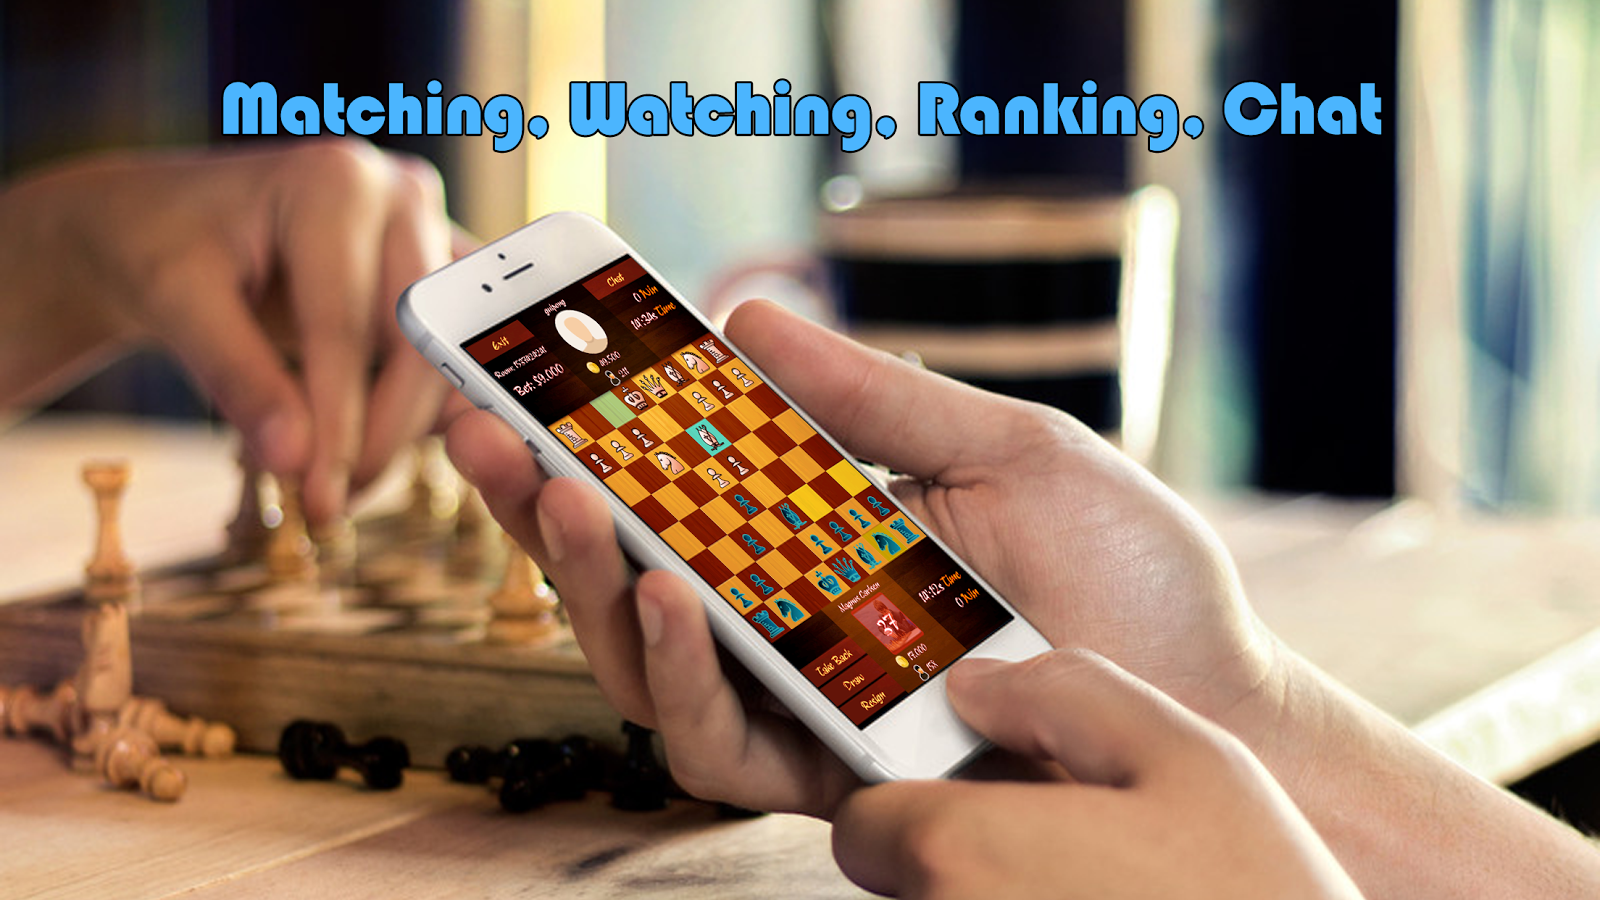 Chess Online - Play Chess Live 2 3 0 APK Download - Android